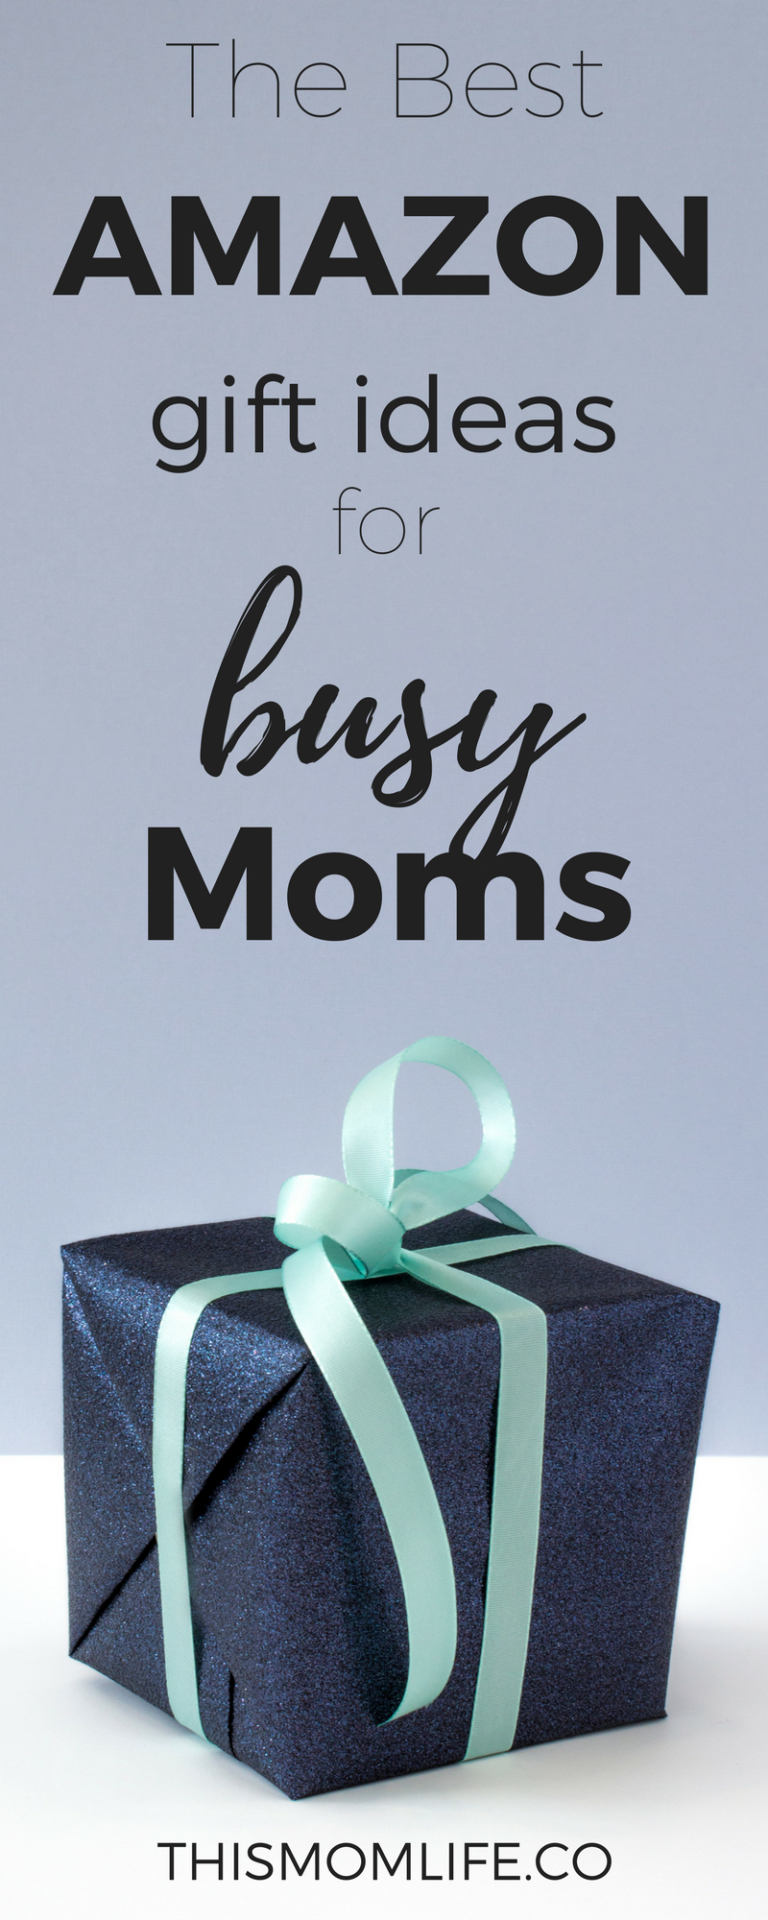 The Best and Most Practical Gifts for Busy Moms | Best amazon gifts, Best gifts for mom ...